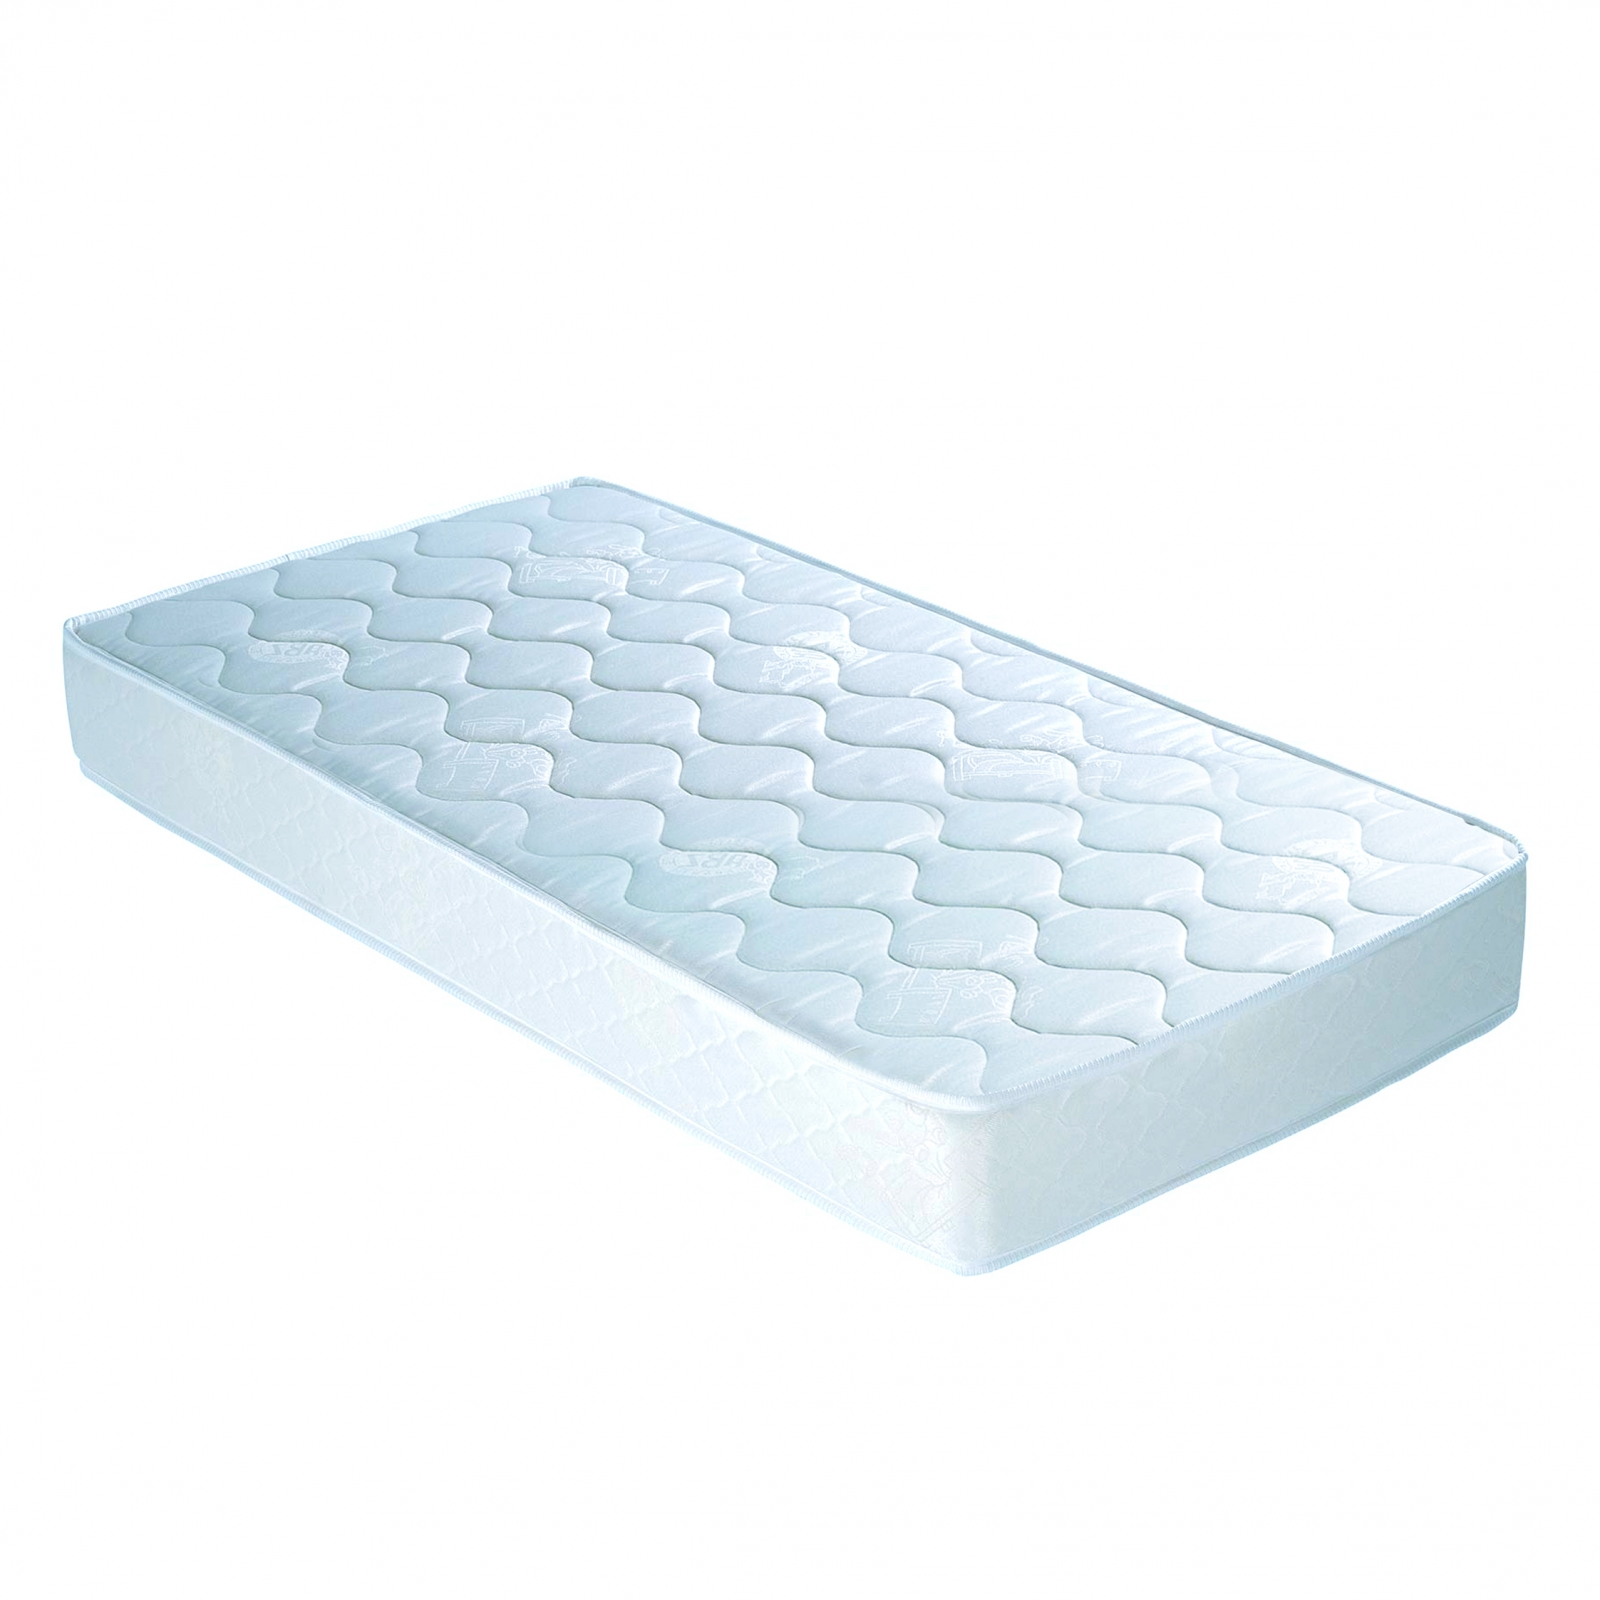 ABZ Mattress Bonnell KM215 70x150 cm.